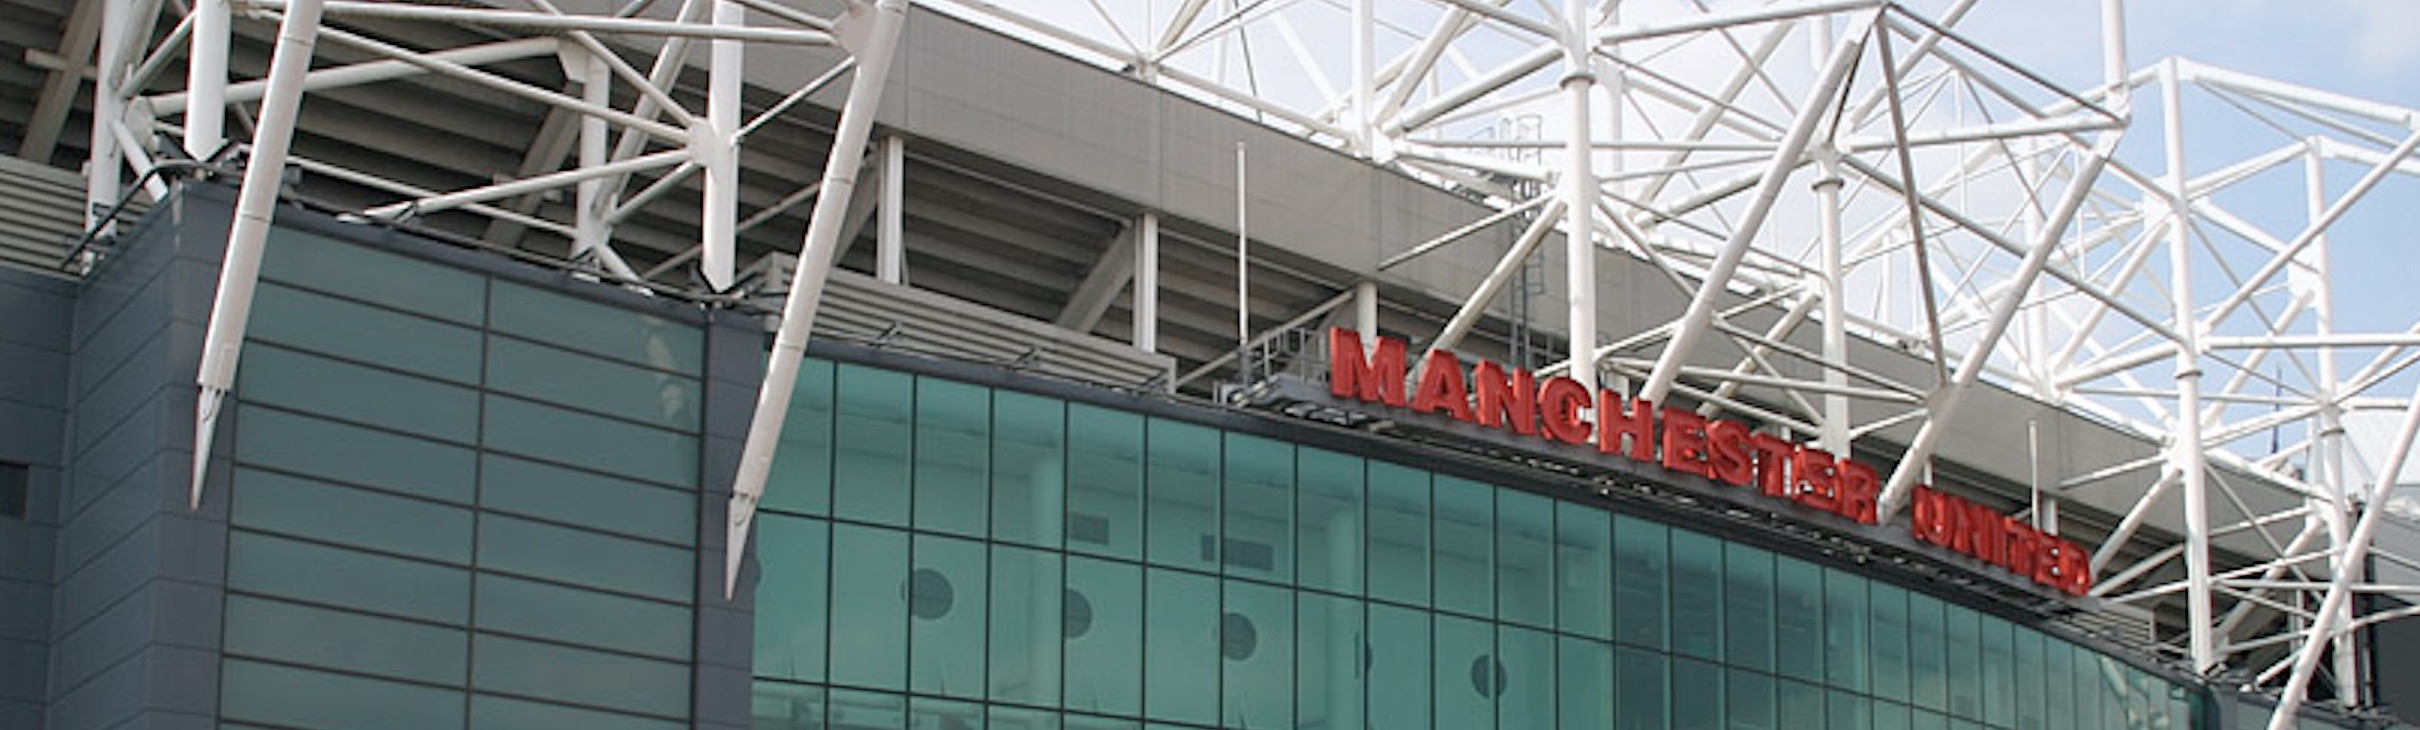 Man United V Brighton - Ticket & Hotel 1 Night